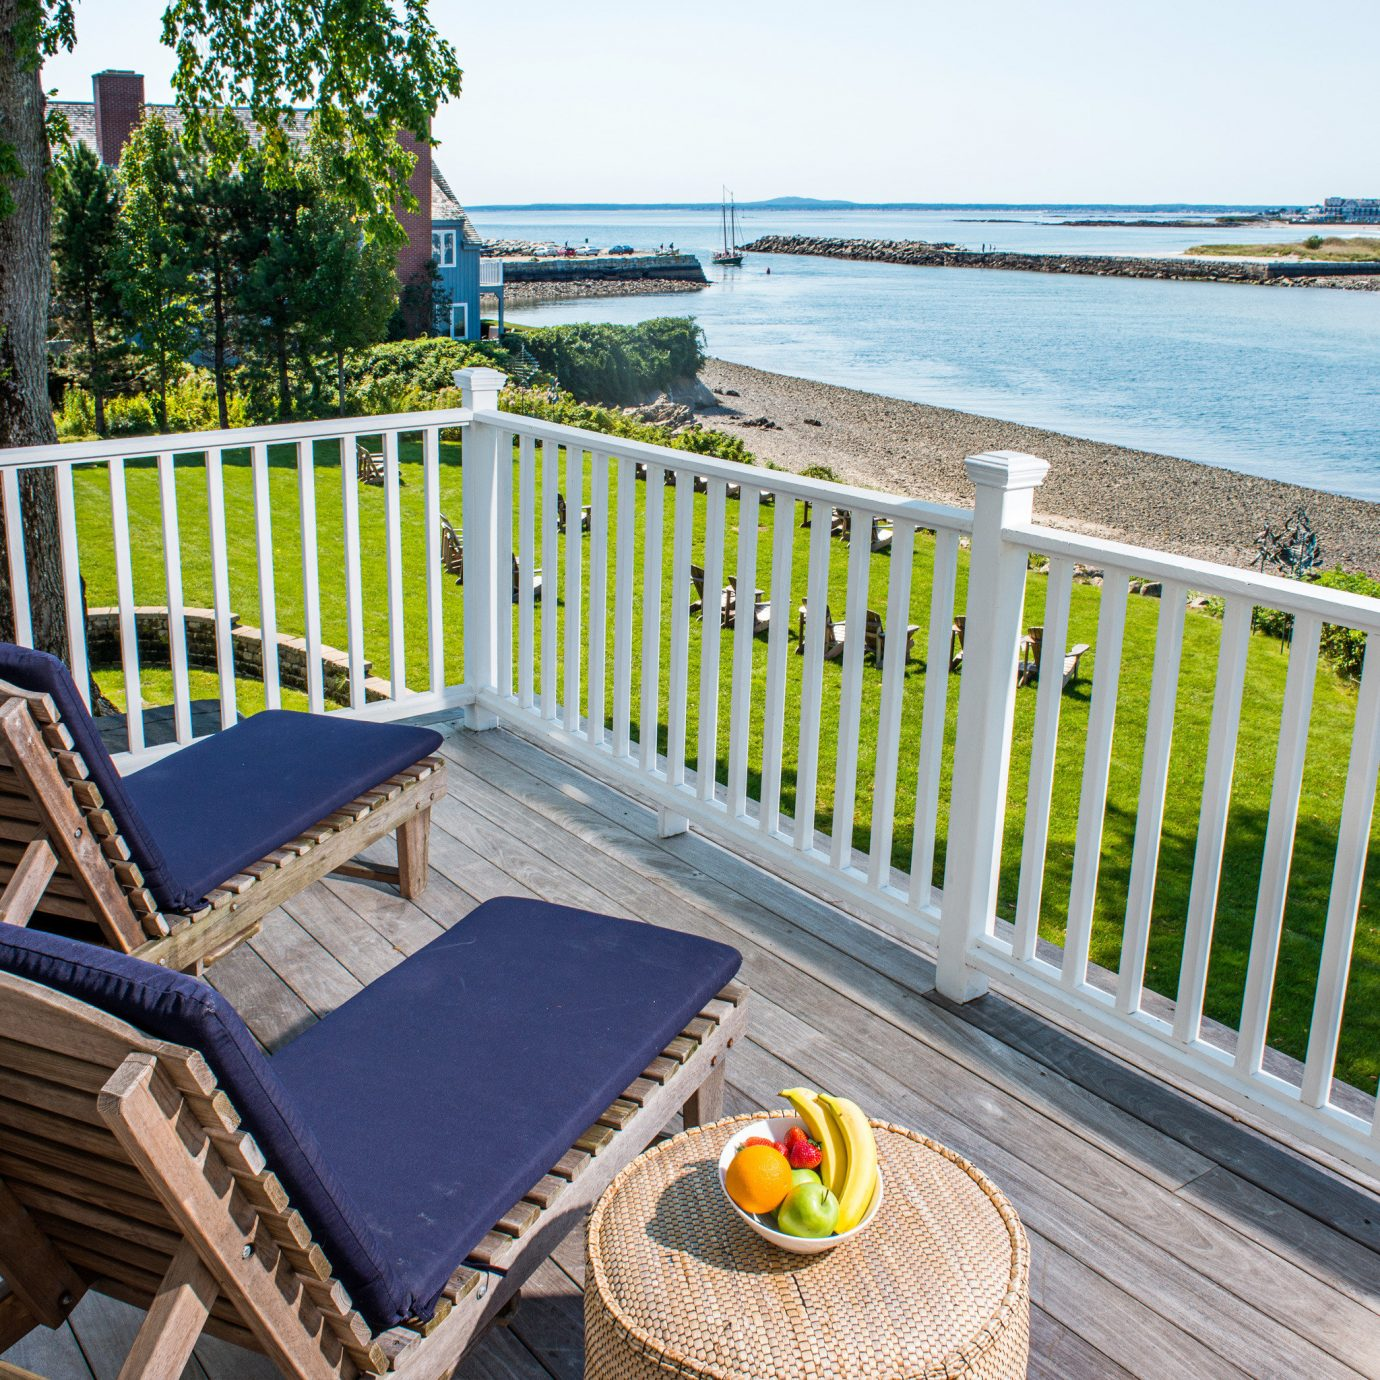 Balcony Classic Elegant Inn Lounge Waterfront Fence sky leisure chair property wooden walkway Resort Beach swimming pool home Deck Villa cottage backyard outdoor structure overlooking porch